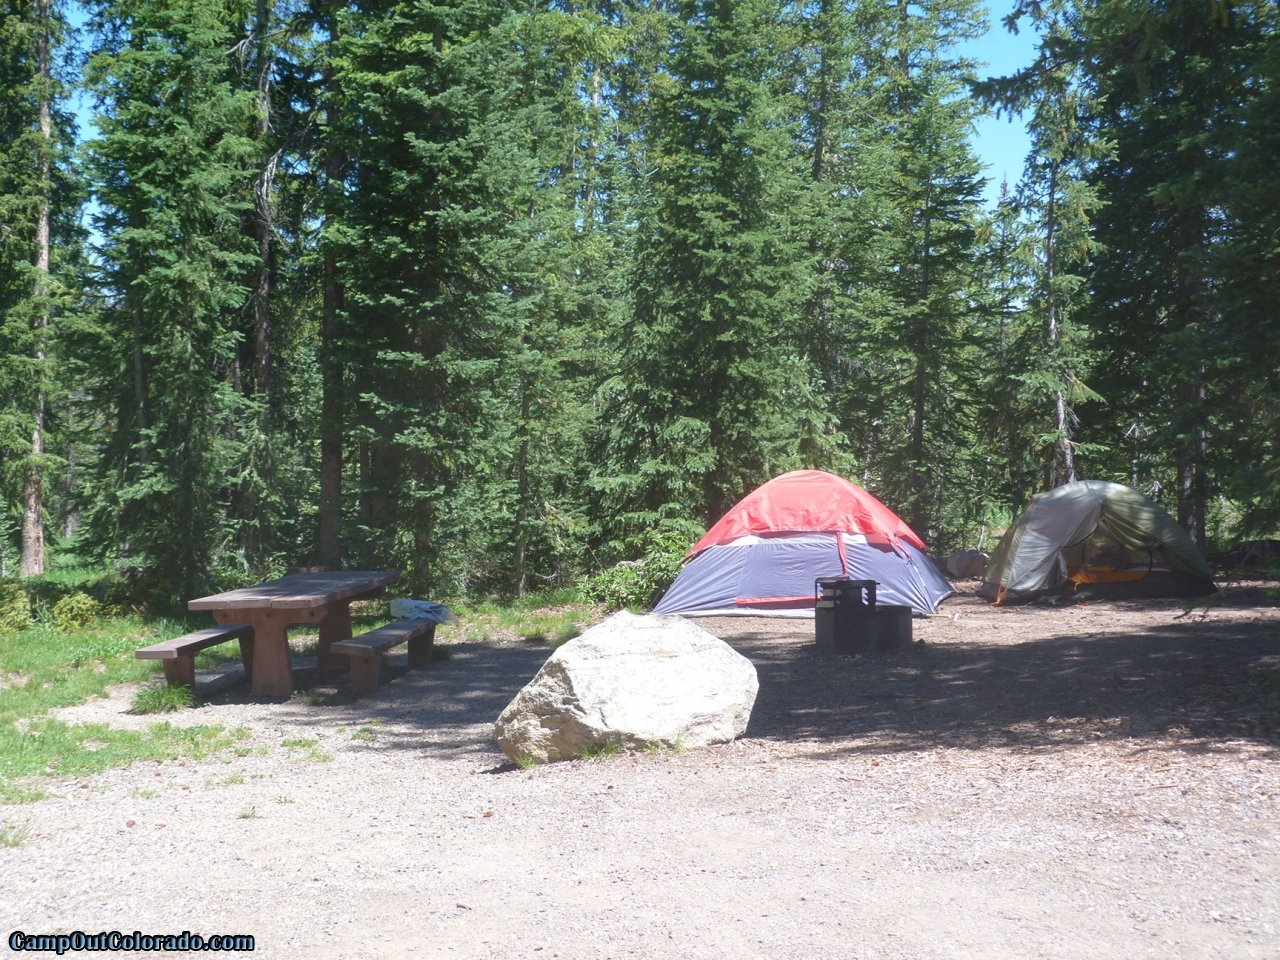 campoutcolorado-meadows-campground-rabbit-ears-camping